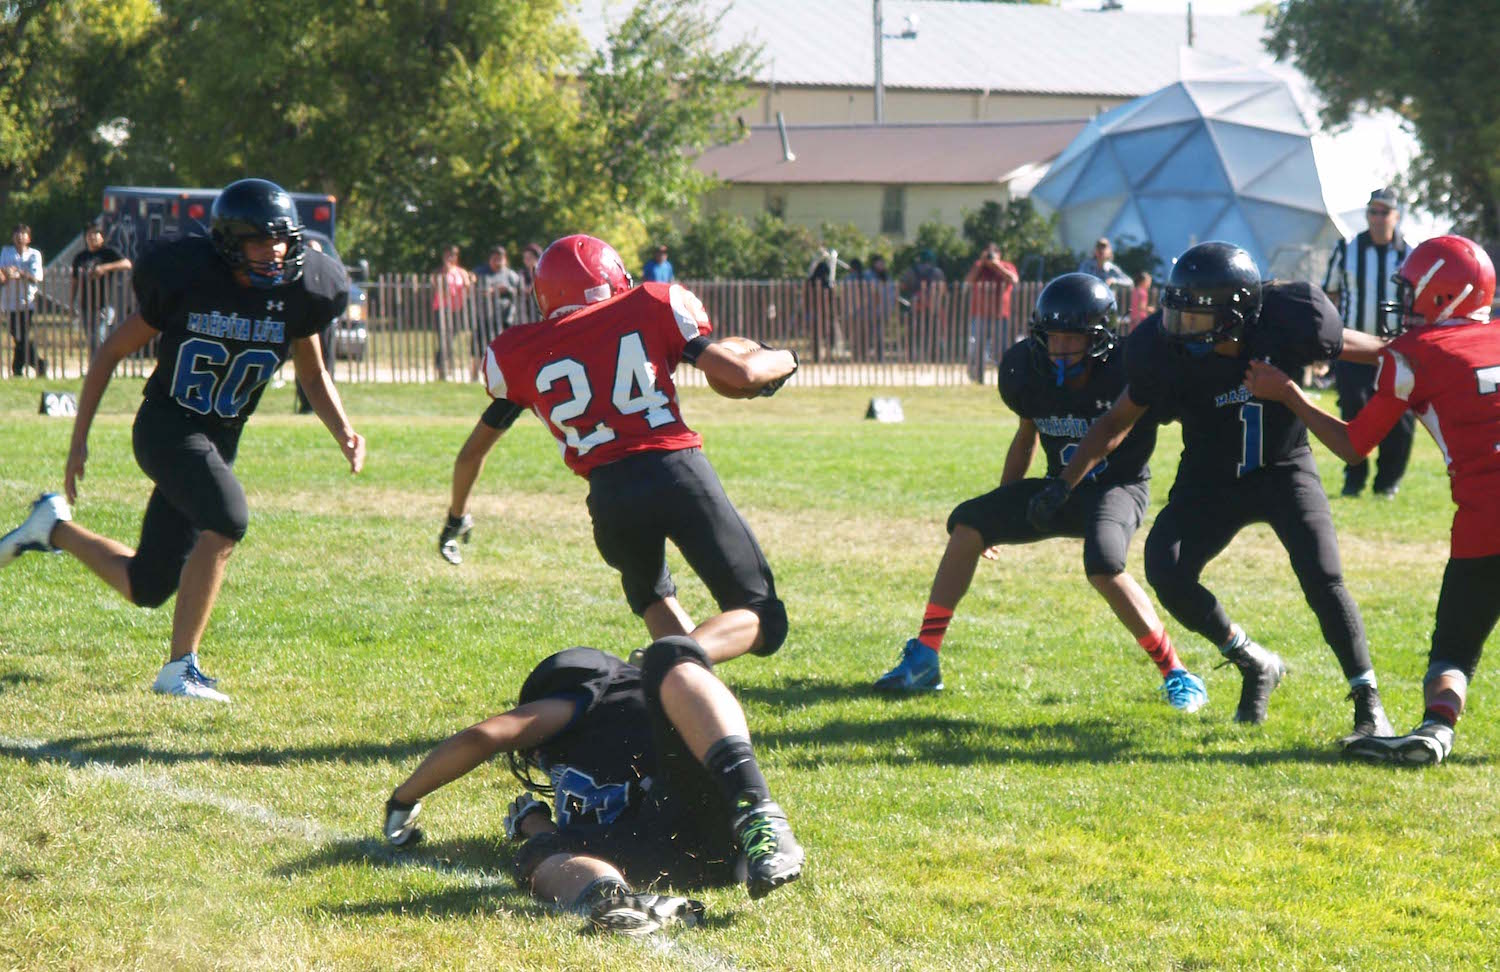 Native Sun News: Rival teams meet on football field at Pine Ridge